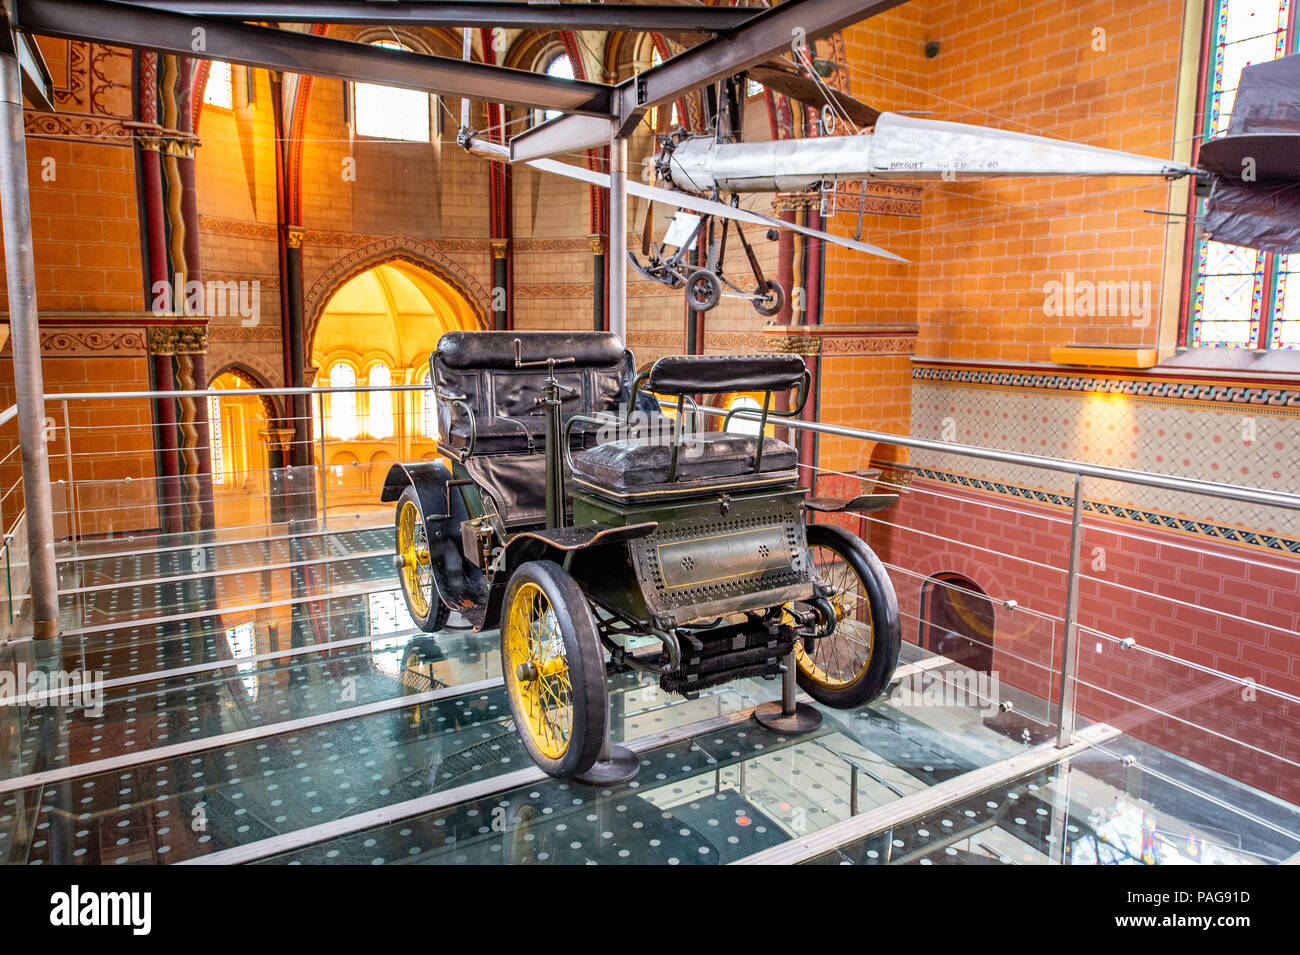 The Vis-a-vis automobile by Albert de Dion and Georges Bouton was designed in 1899. Displayed at the Musée des Arts et Métiers in Paris - Stock Image